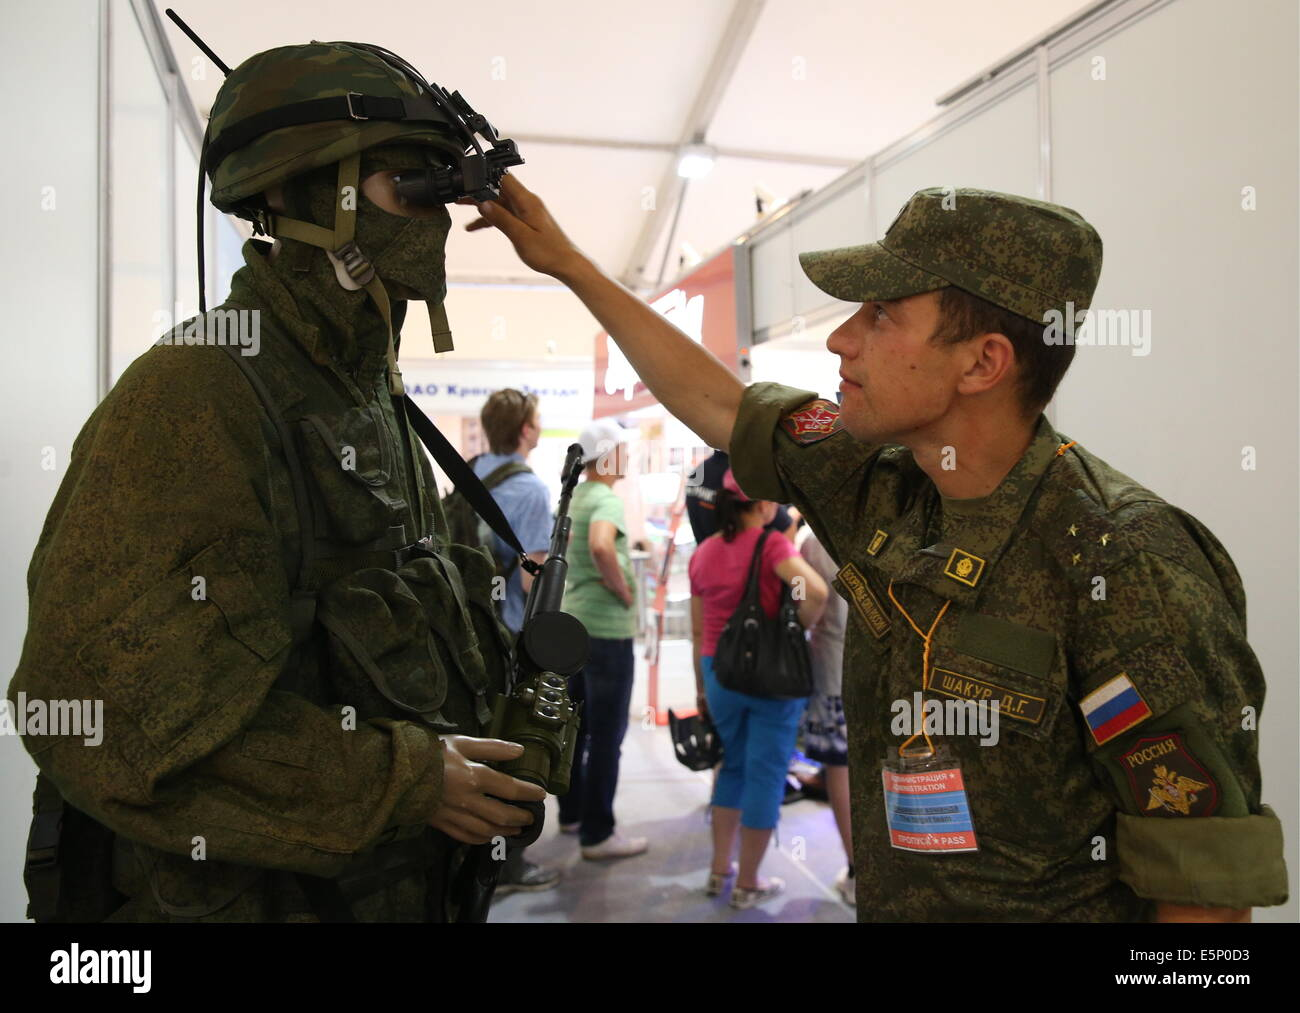 moscow-region-russia-4th-aug-2014-a-man-